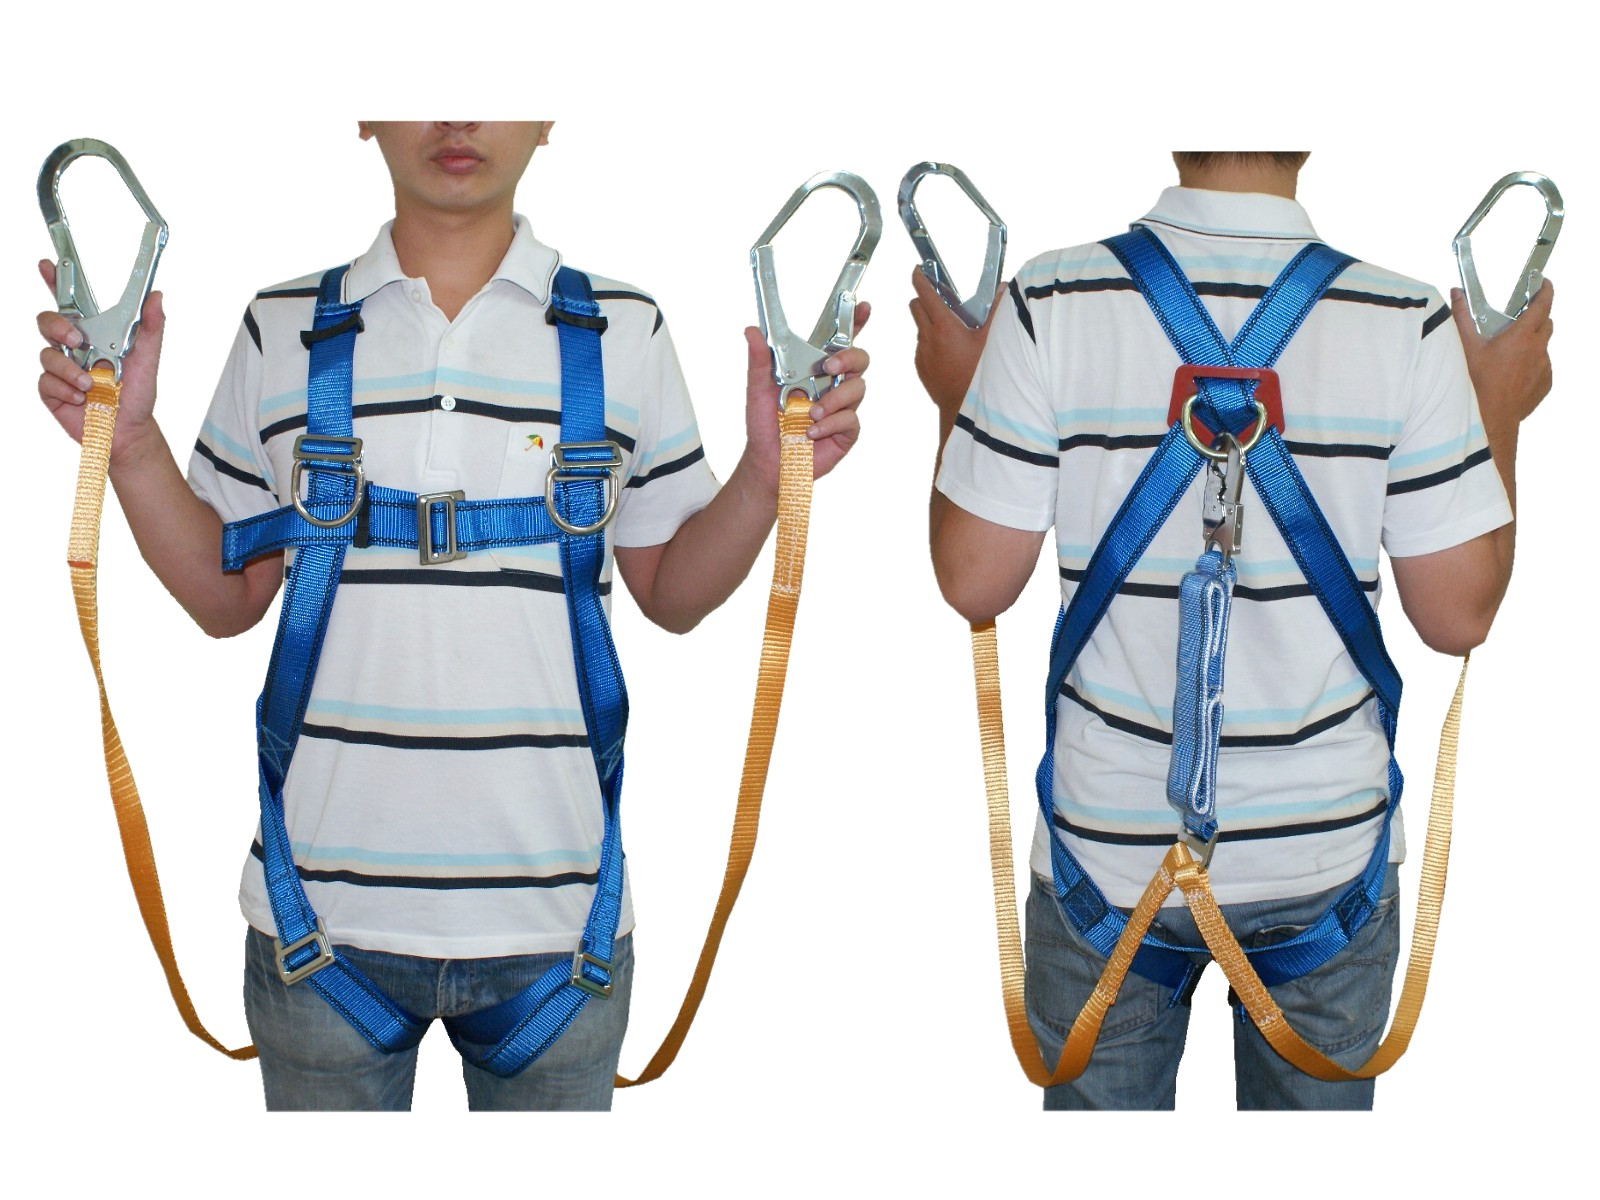 Fall Protection Safety Harness  Fall Protection Safety